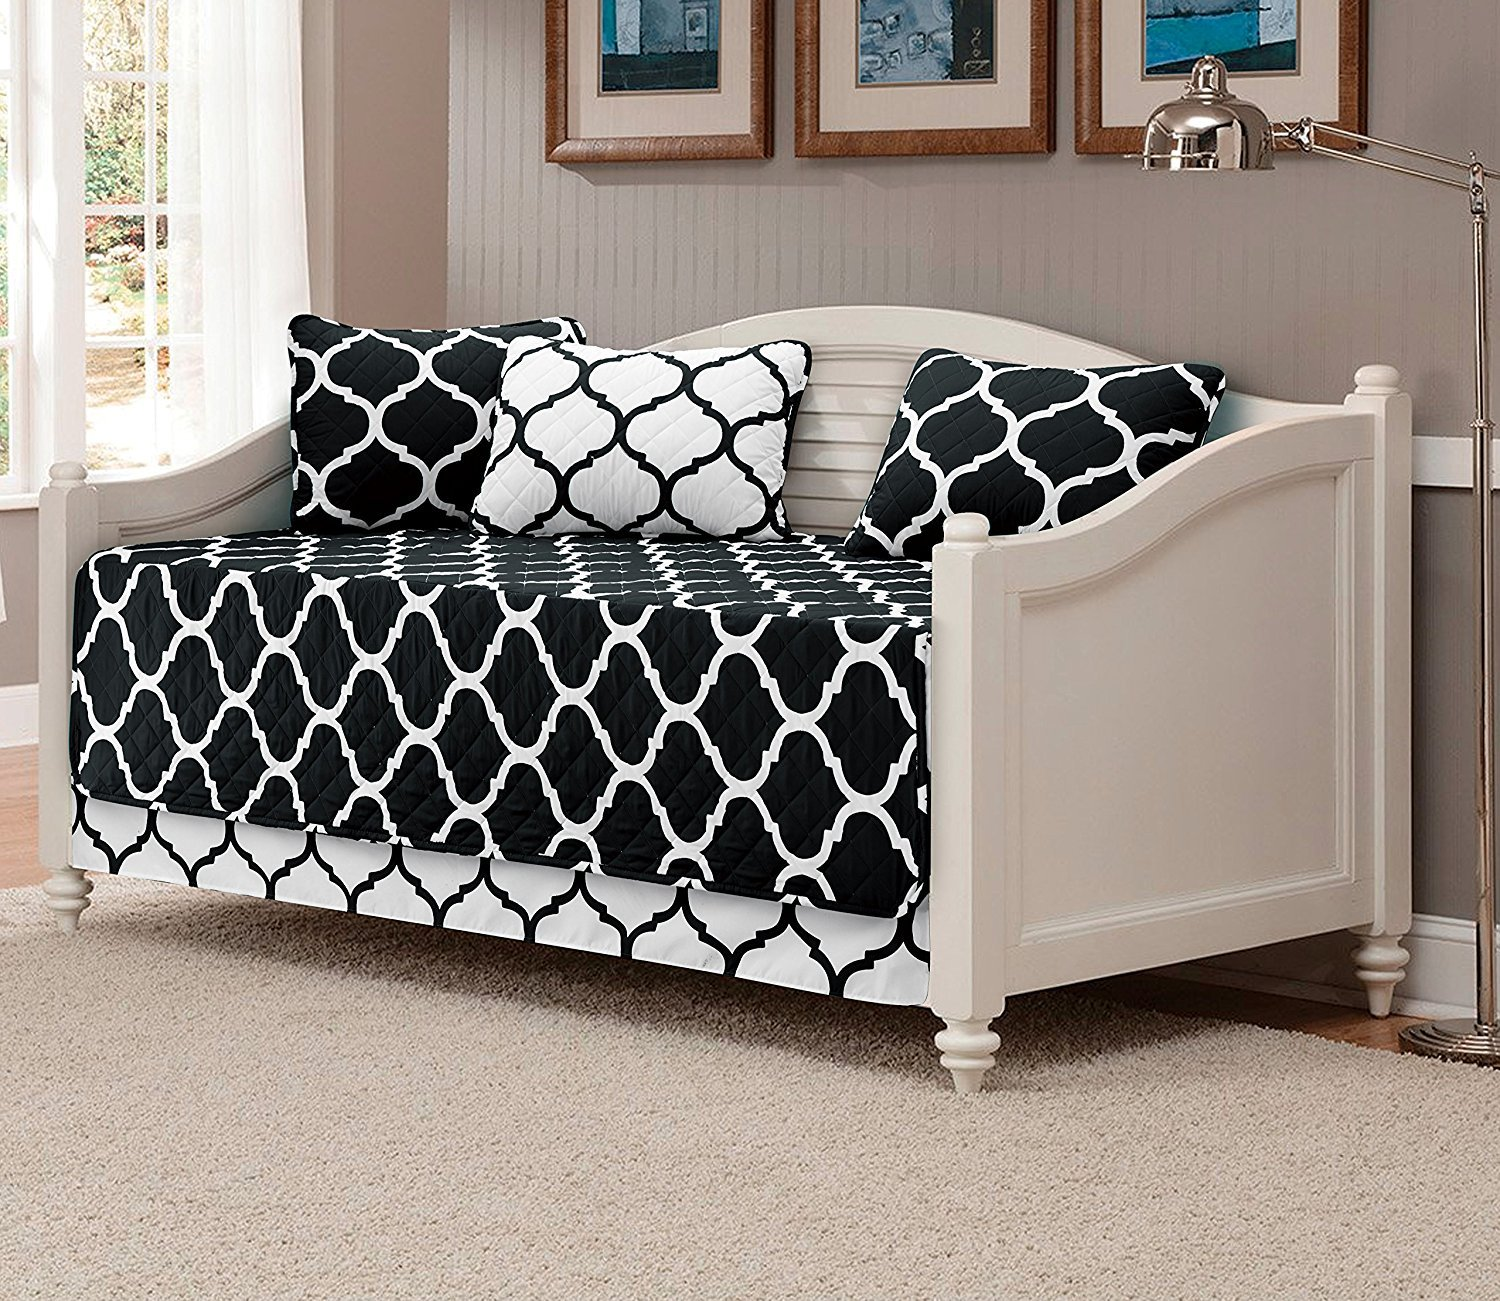 Fancy Collection 5pc DayBed Quilted Bedspread Coverlet Set Modern Geometric Black/White New